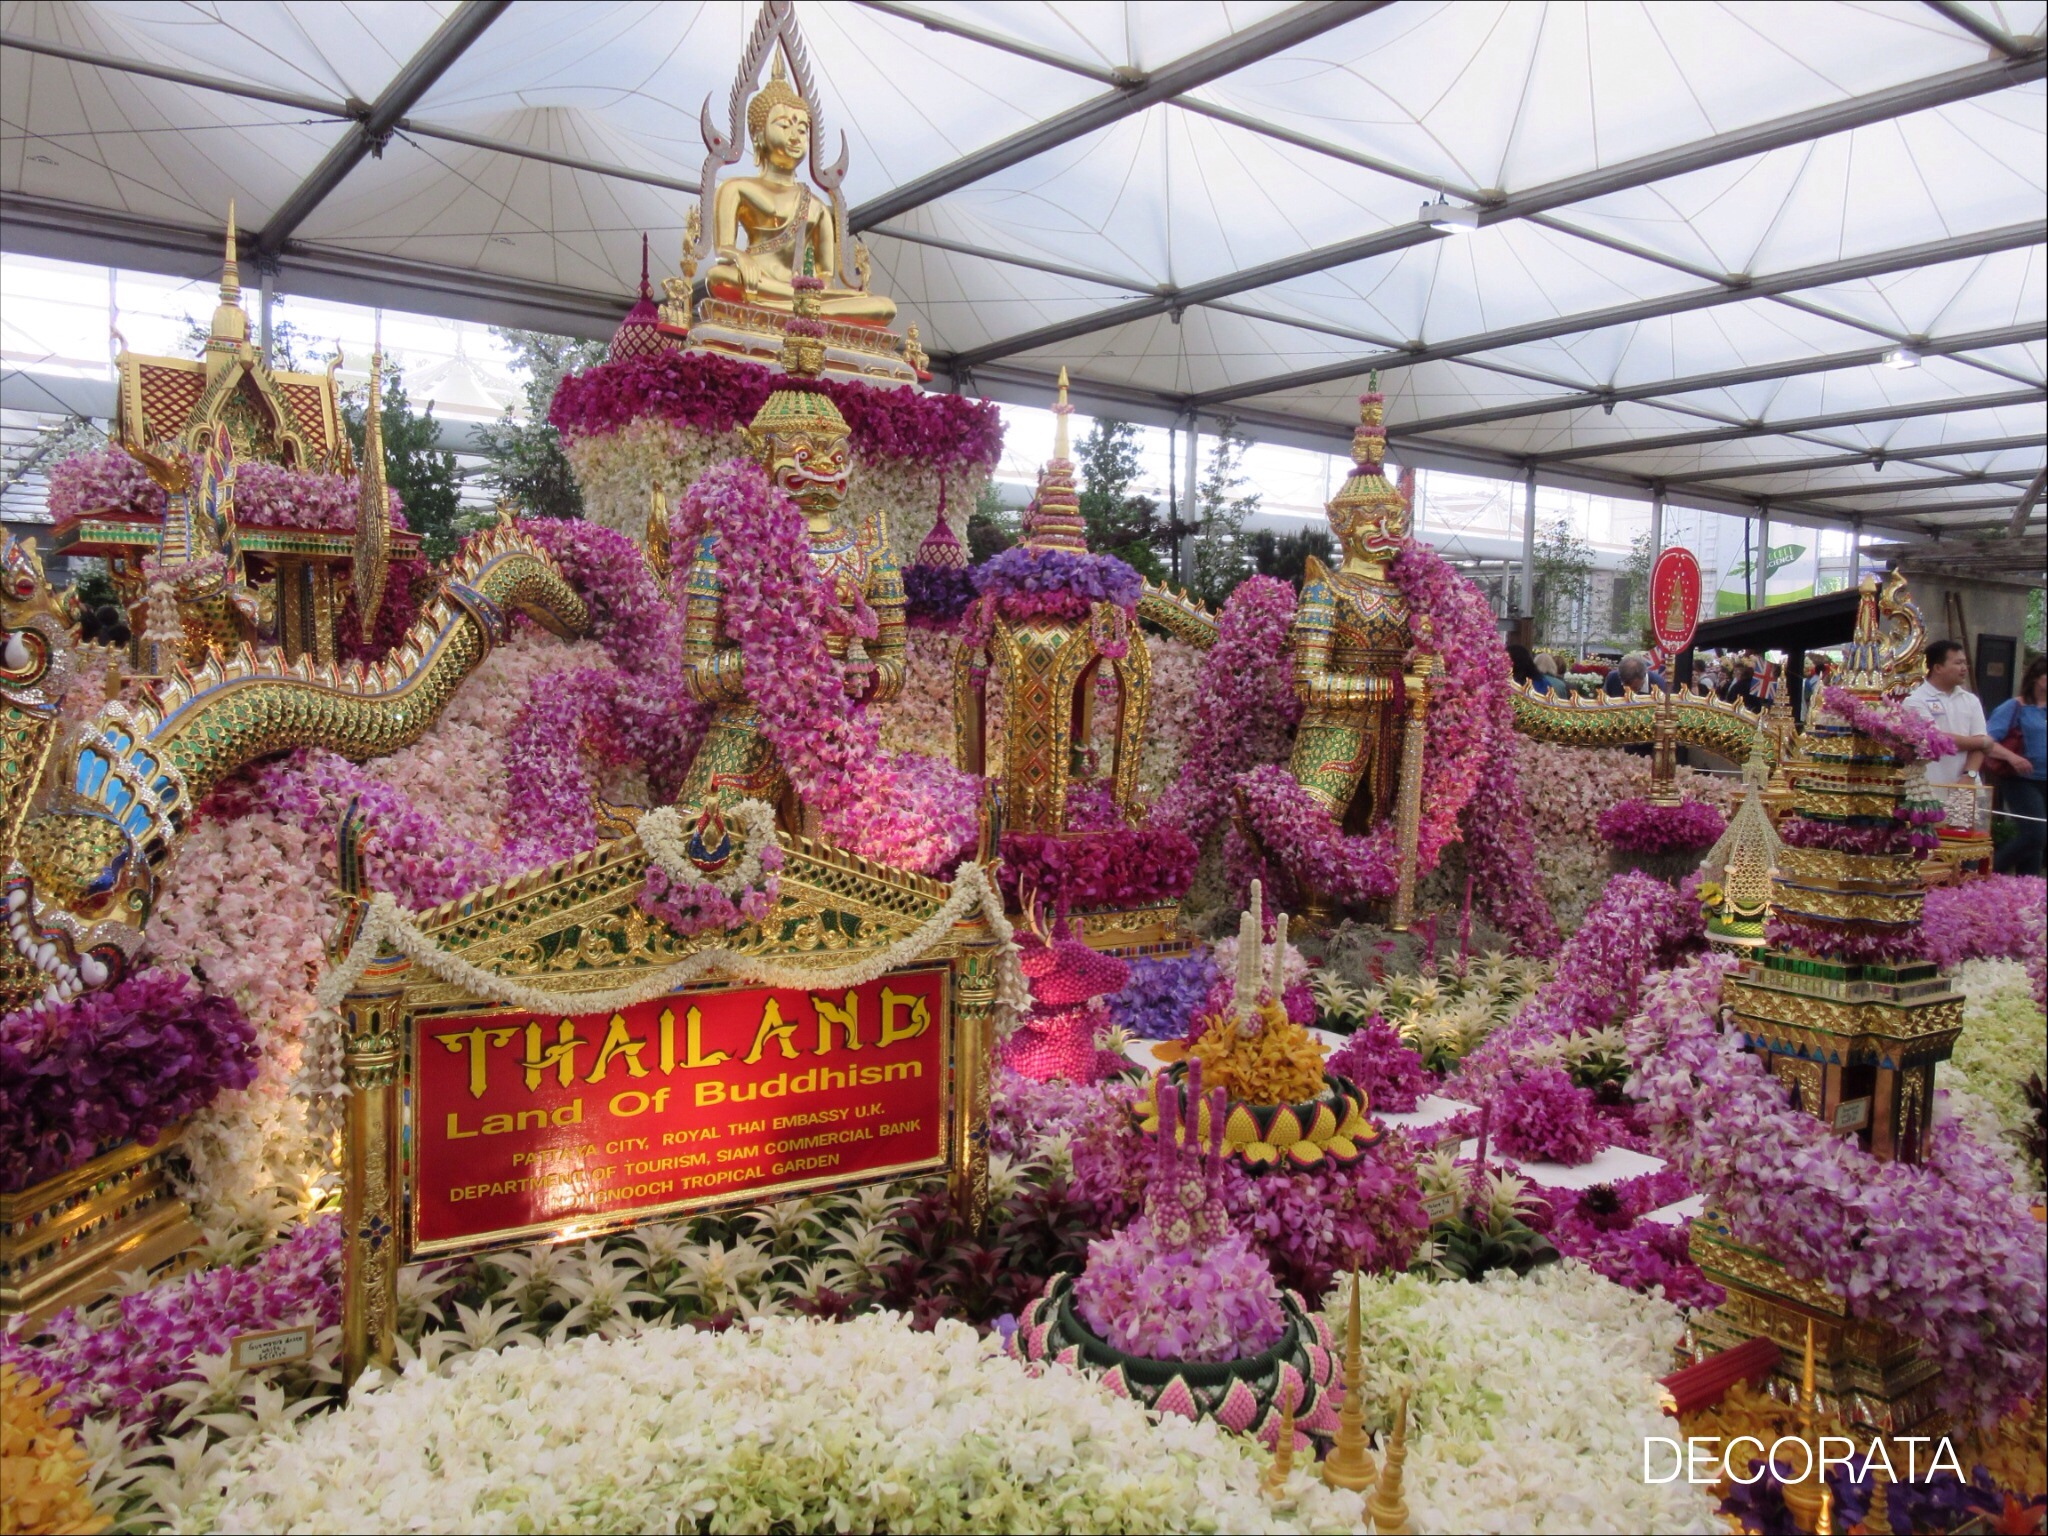 RHS Chelsea Flower Show, orchids, Decorata Design, sue womersley